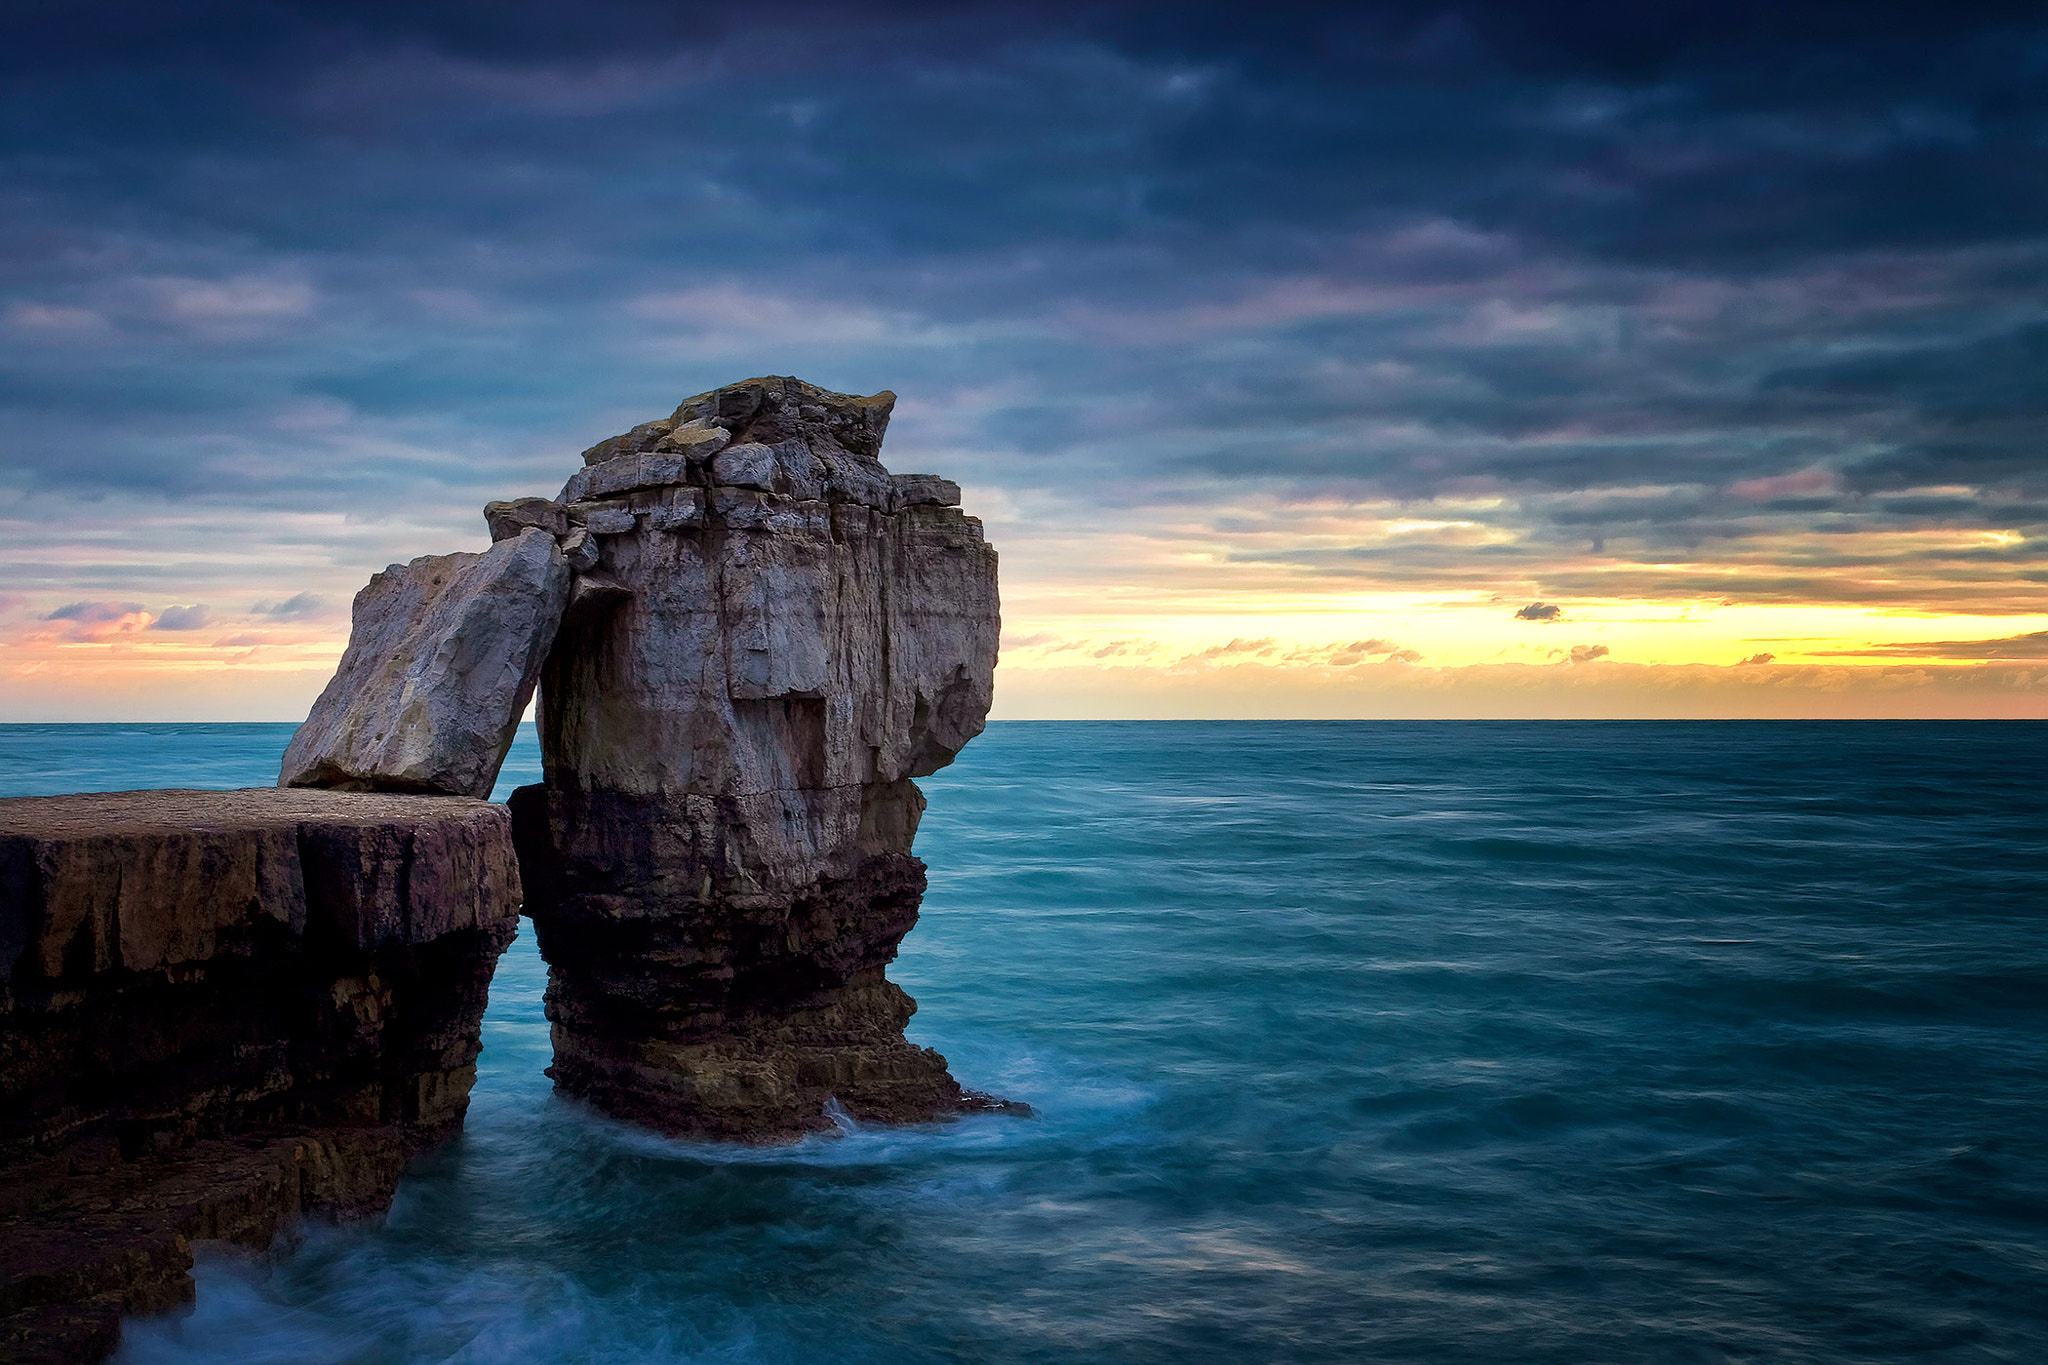 Photograph Pulpit Rock by Paul Reiffer on 500px